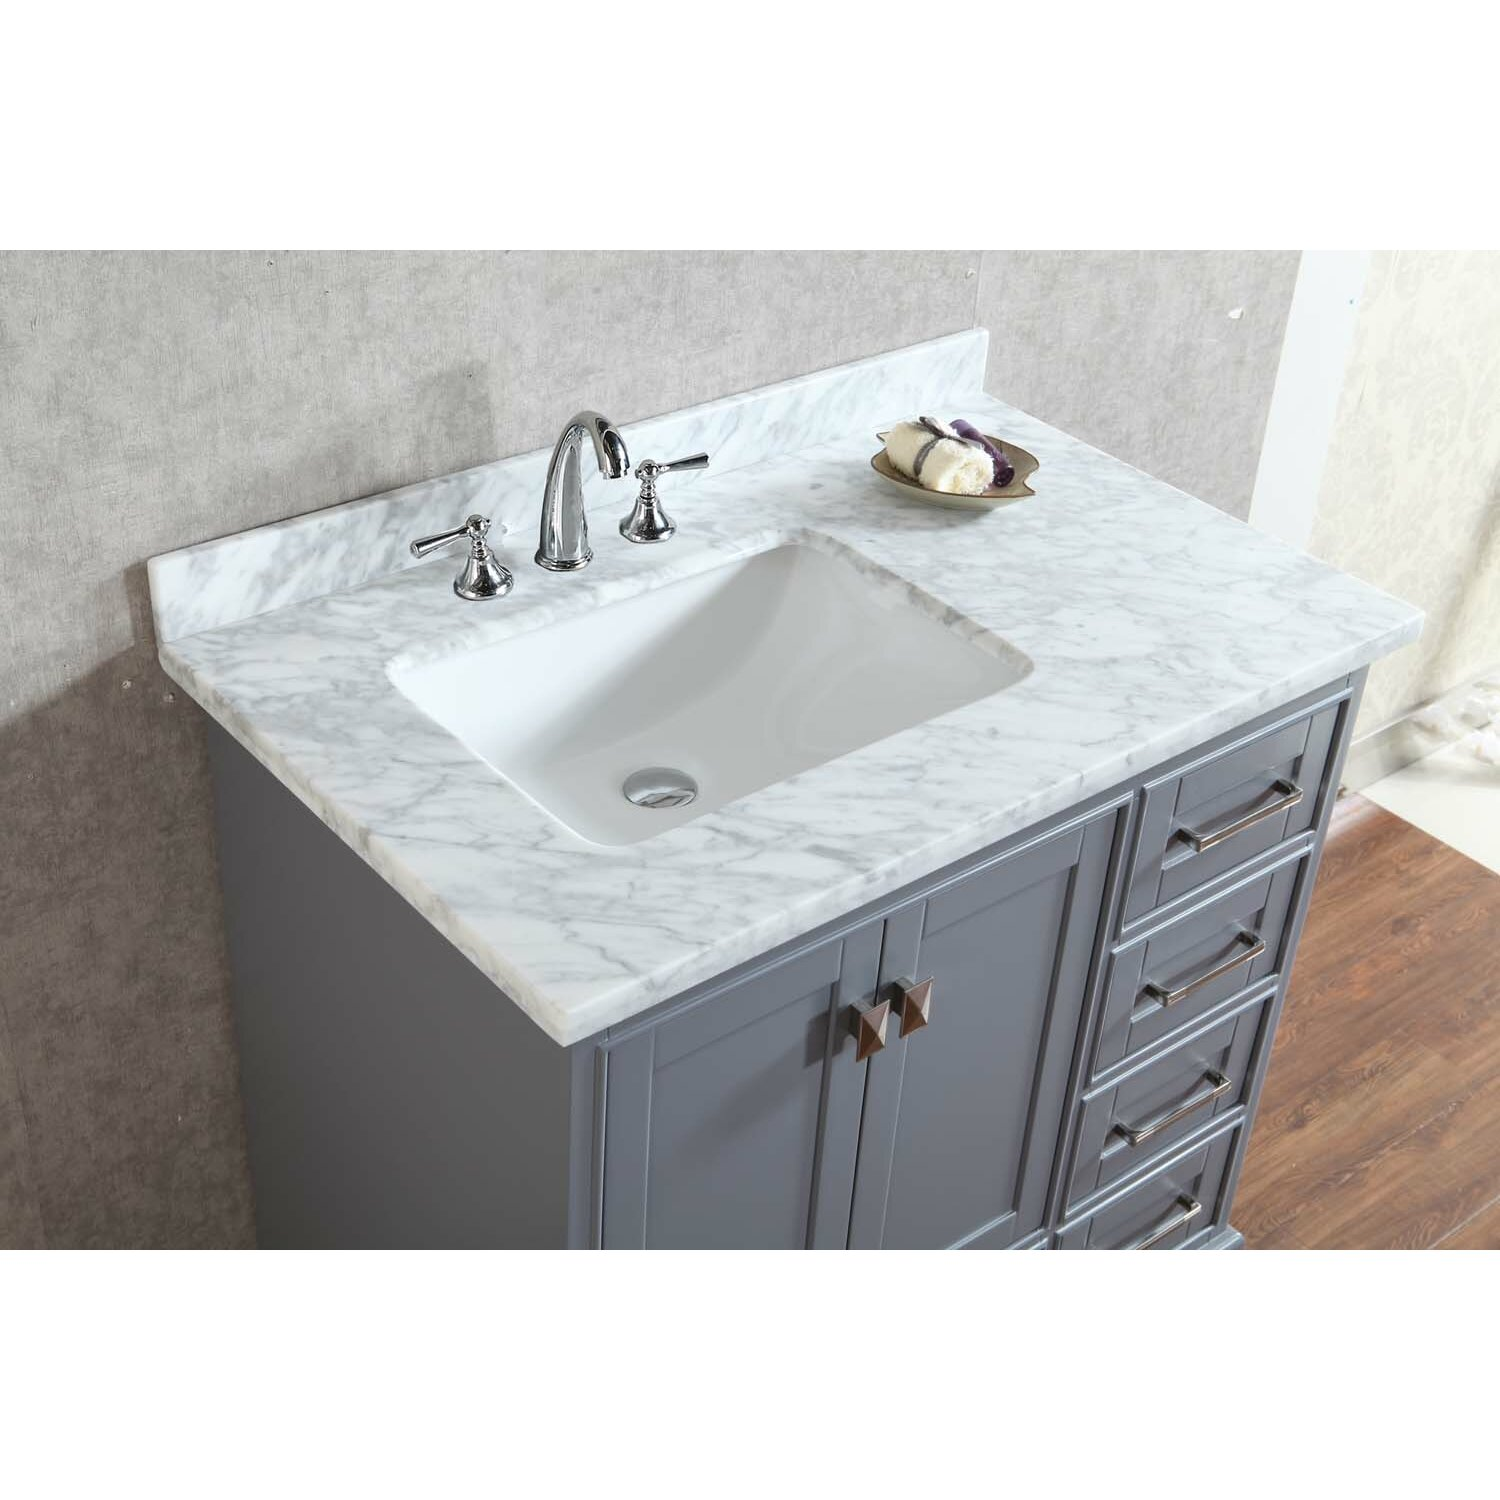 Dcor design barrington 36 single sink bathroom vanity set for Bath toilet and sink sets